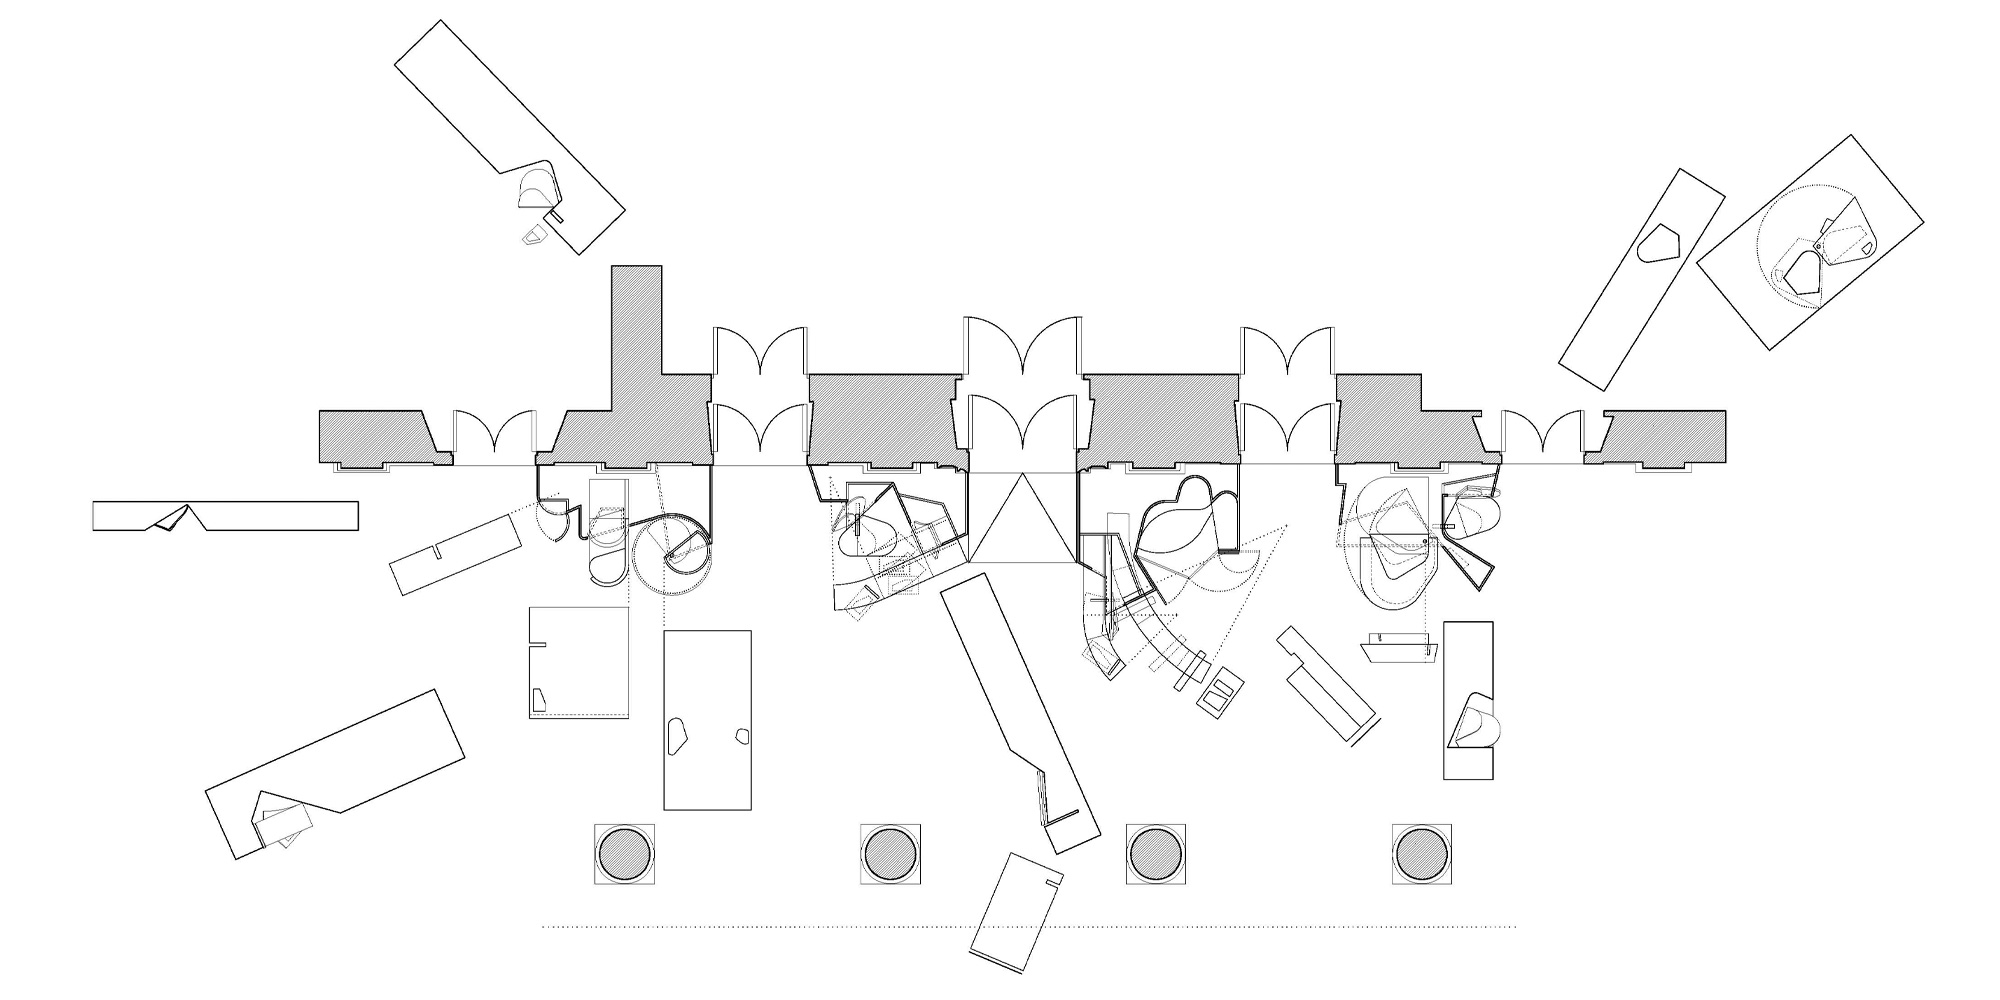 Plan and Elevations © Miralles Tagliabue EMBT